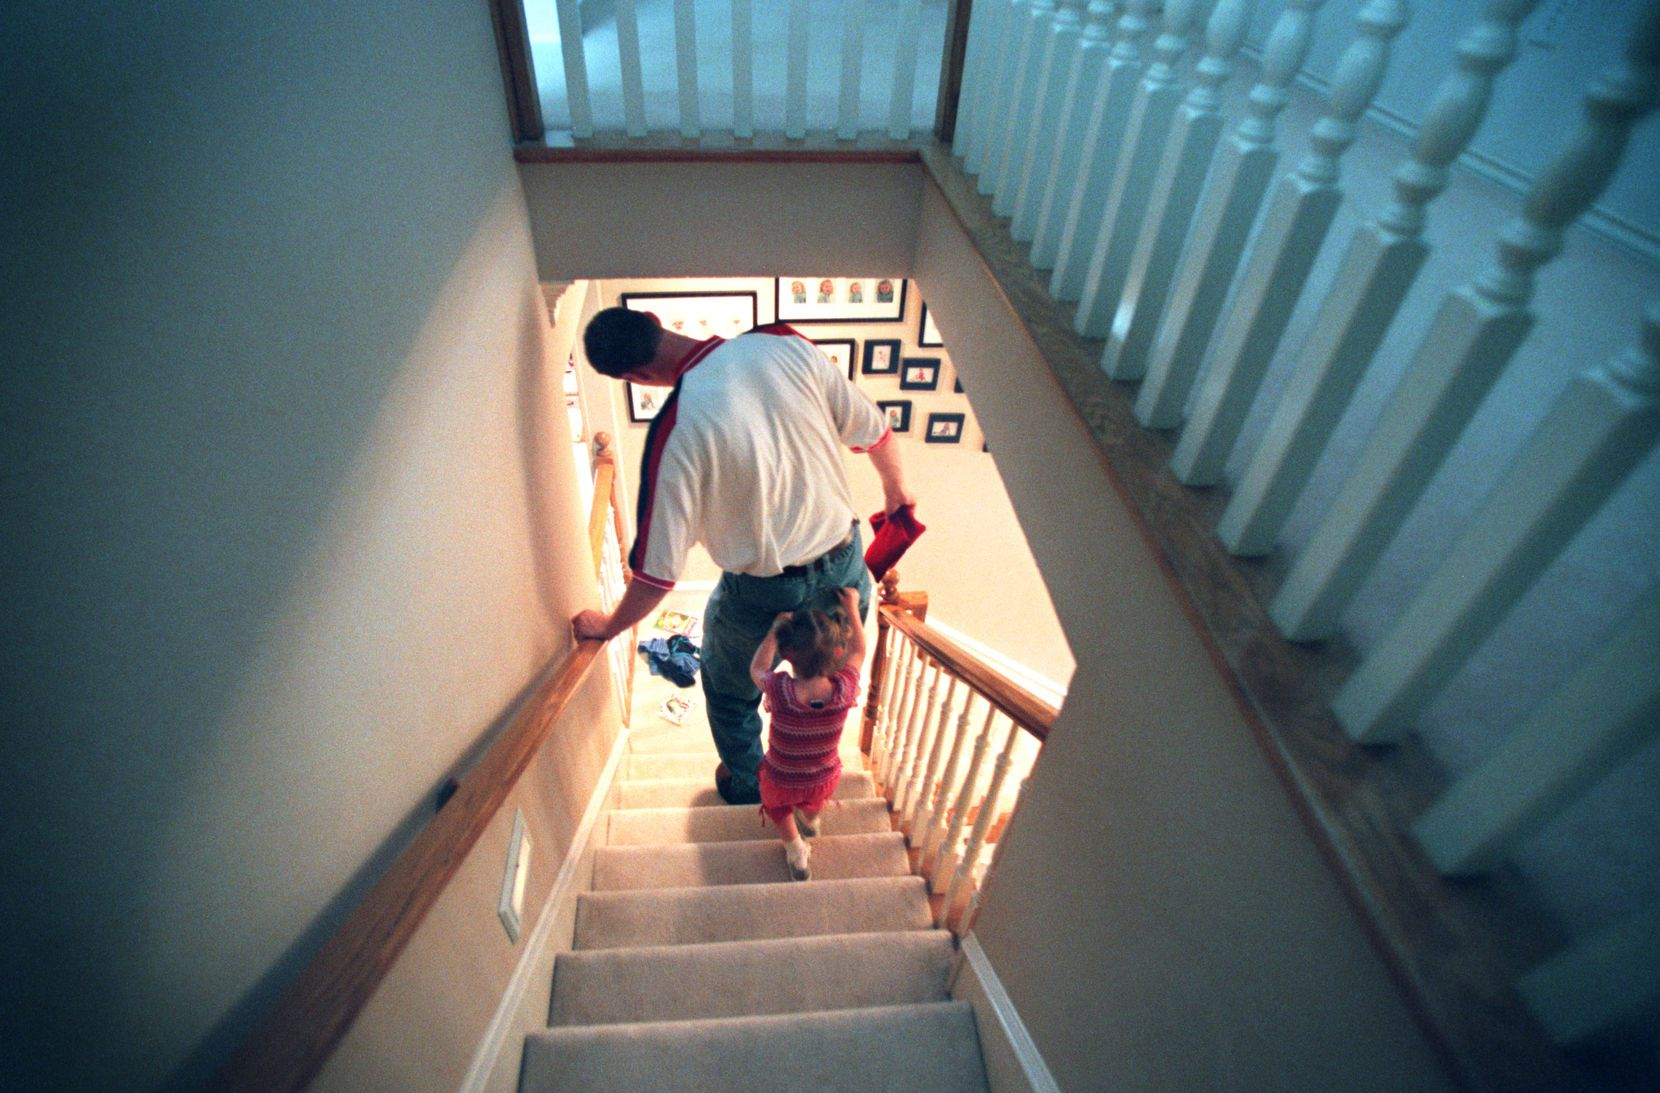 Dallas Mavericks center Shawn Bradley (7-foot-6) has to duck to clear door frames and stairway ceilings in his own home.  Here he leans over to fit in the stairwell as he is followed downstairs by daughter Chelsea, 3.